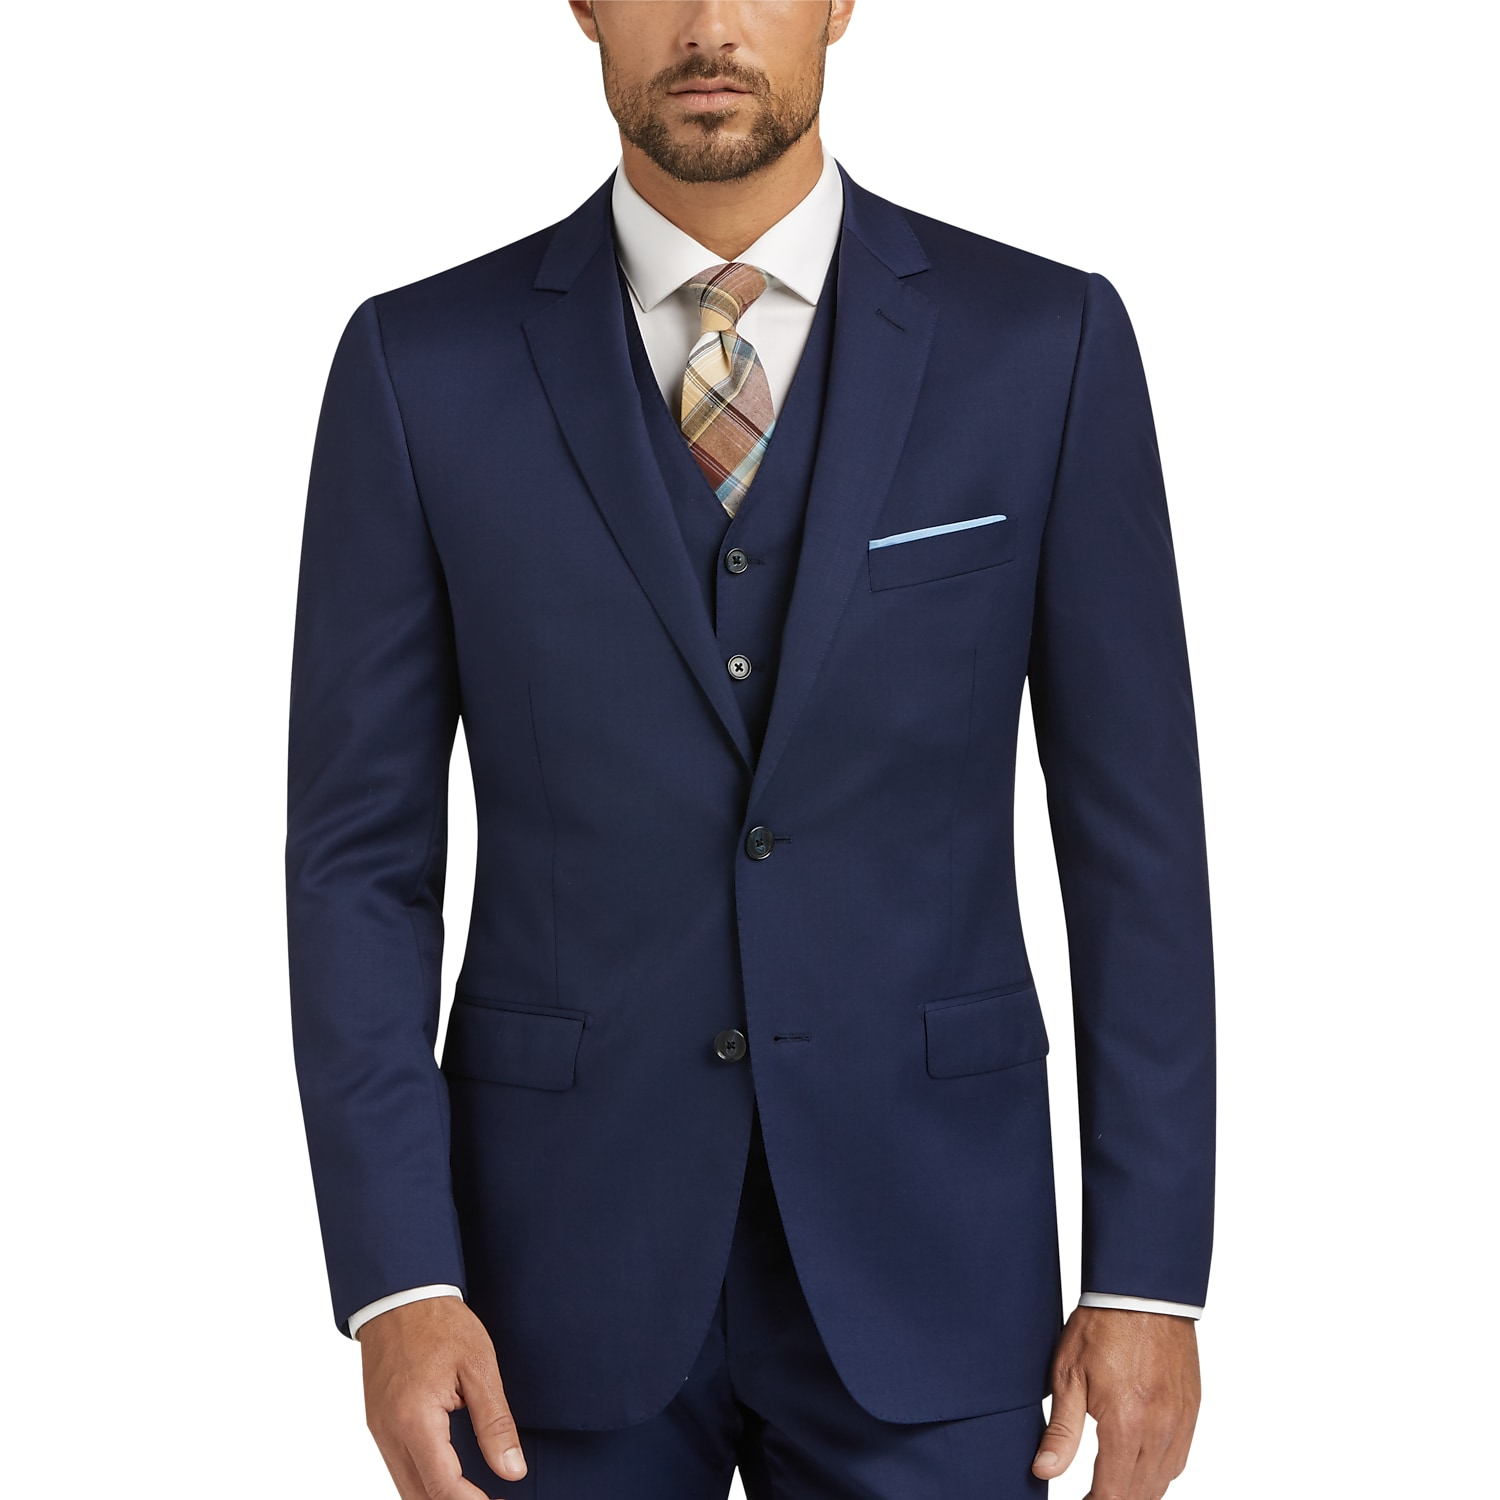 Men's Suits - Top Suit Shop Online | Men's Wearhouse